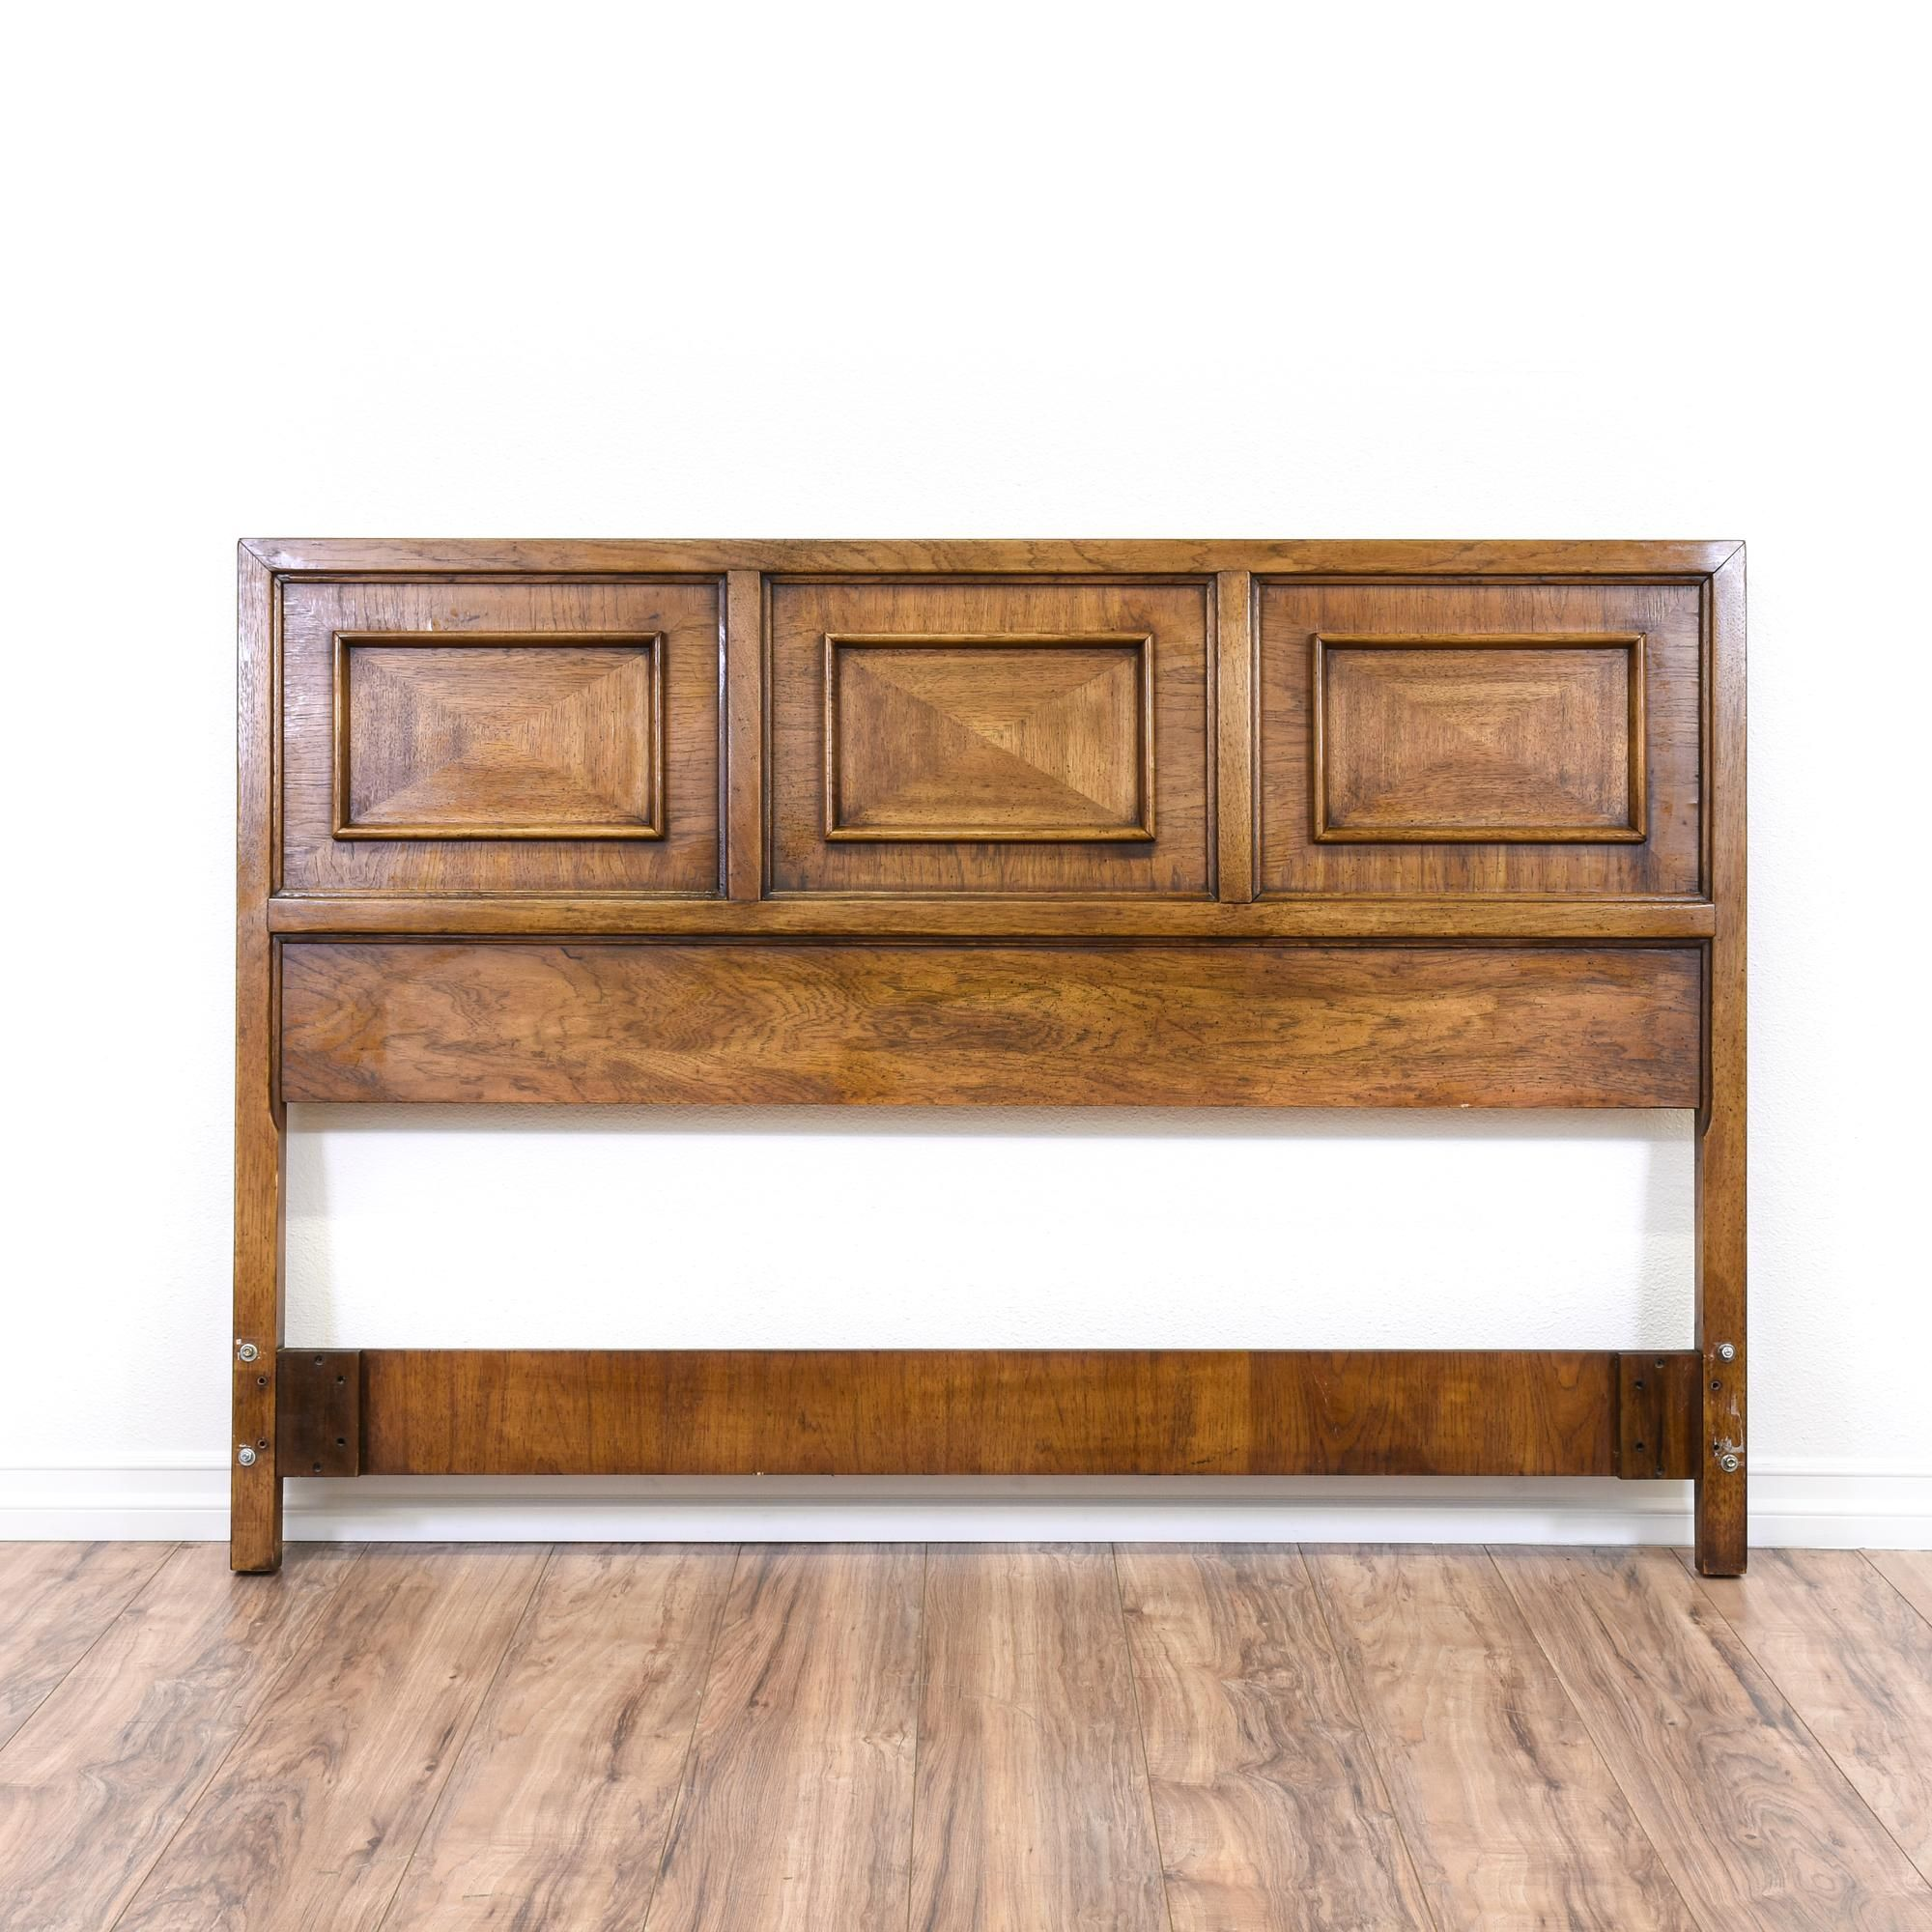 This Mid Century Modern Queen Sized Headboard Has Carved Trim,